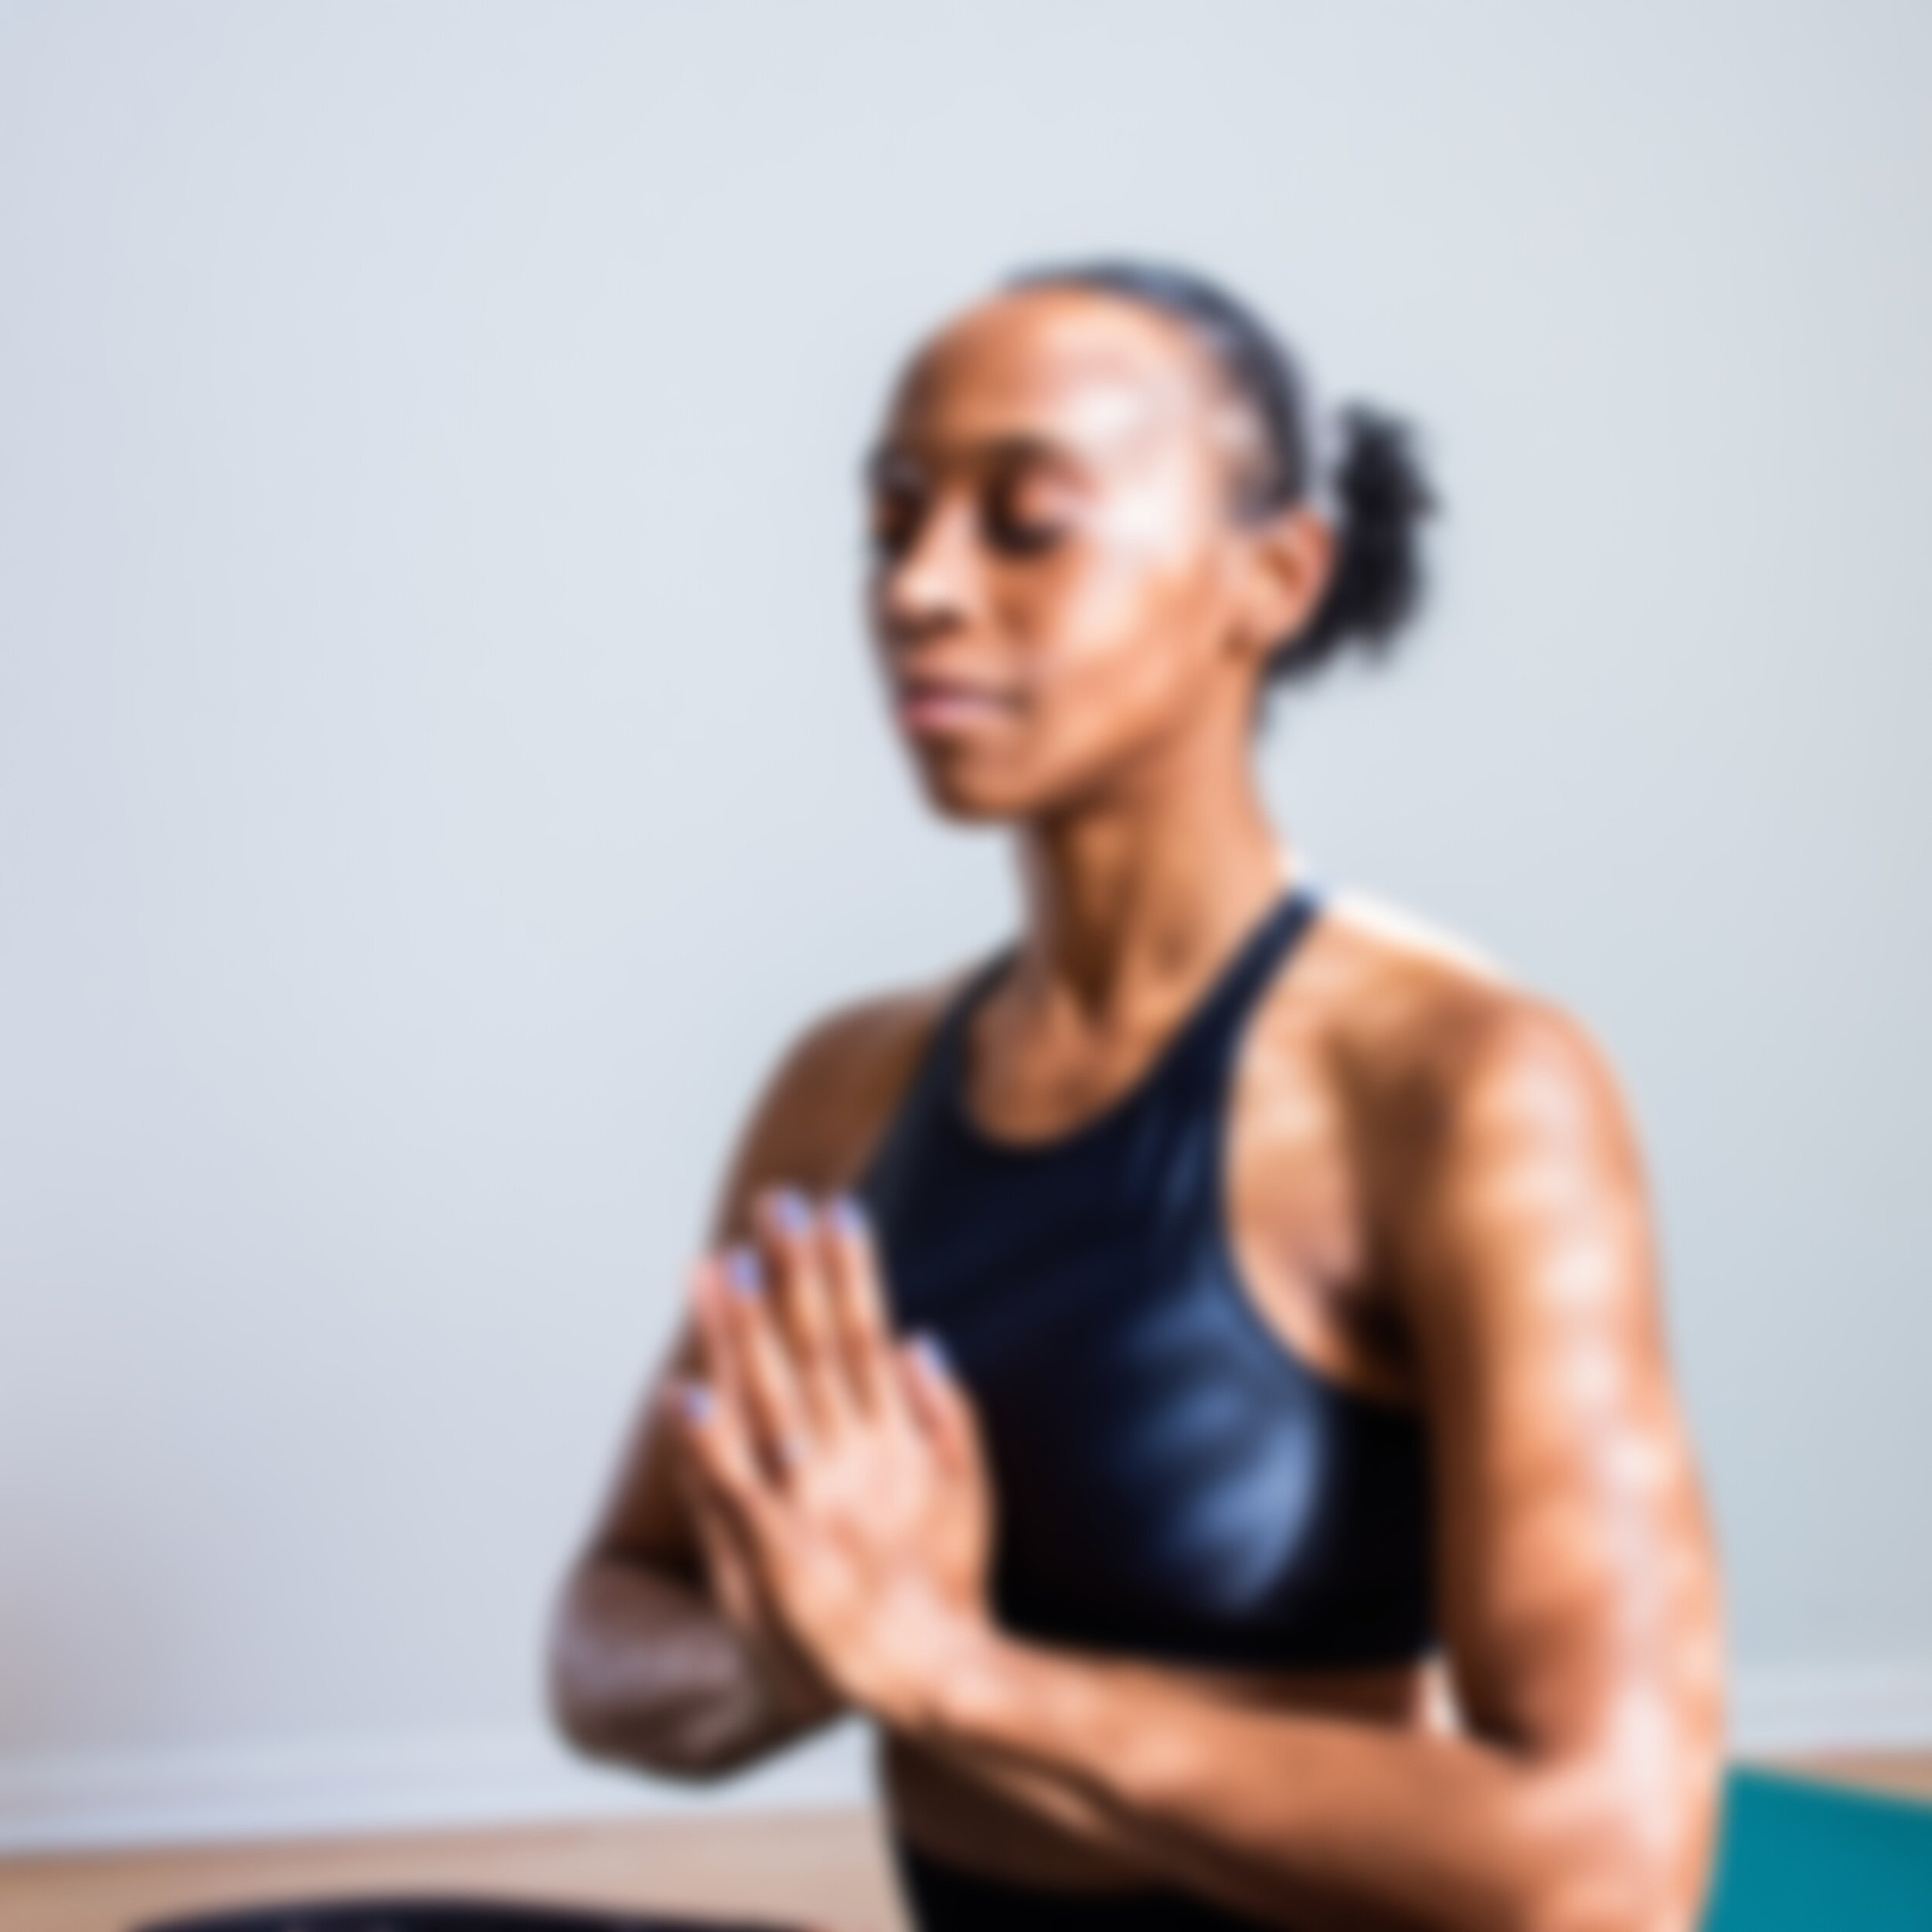 Yoga with Whitney Harris - Beginning October 2 · Registration has closedWednesdays (through October 30th) · 6:30pm - 7:30pm · Ages 18+ · $25 for entire workshopRelax, unwind and find the balance between body, soul and mind with Whitney Harris. This experienced instructor is well-versed and provides instruction on Vinyasa, Hatha, Zen flow, Asana, and the breathing techniques of Prana. This class is great for new mothers and all ability levels are welcome. Equipment will be provided but patrons may bring their own. Registration is required and available below.